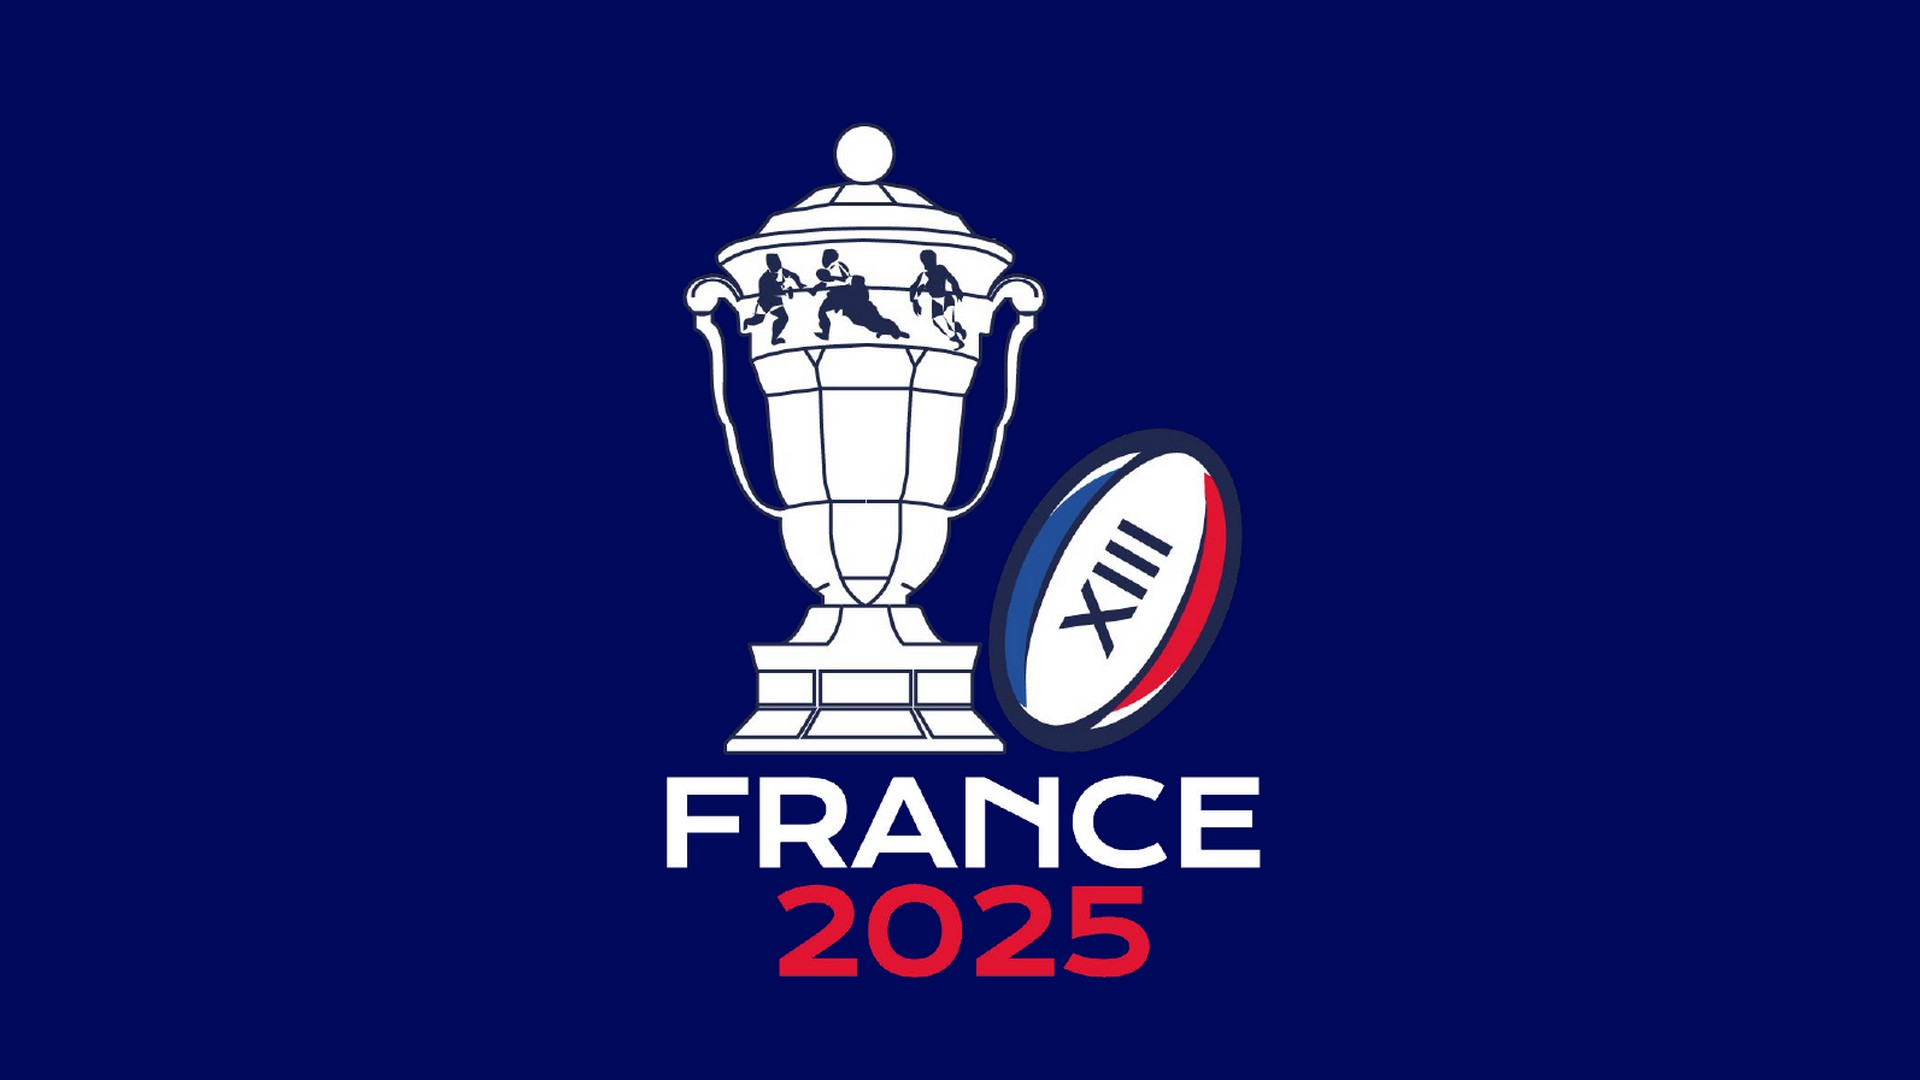 Rugby XIII – Coupe du monde France 2025 (1)